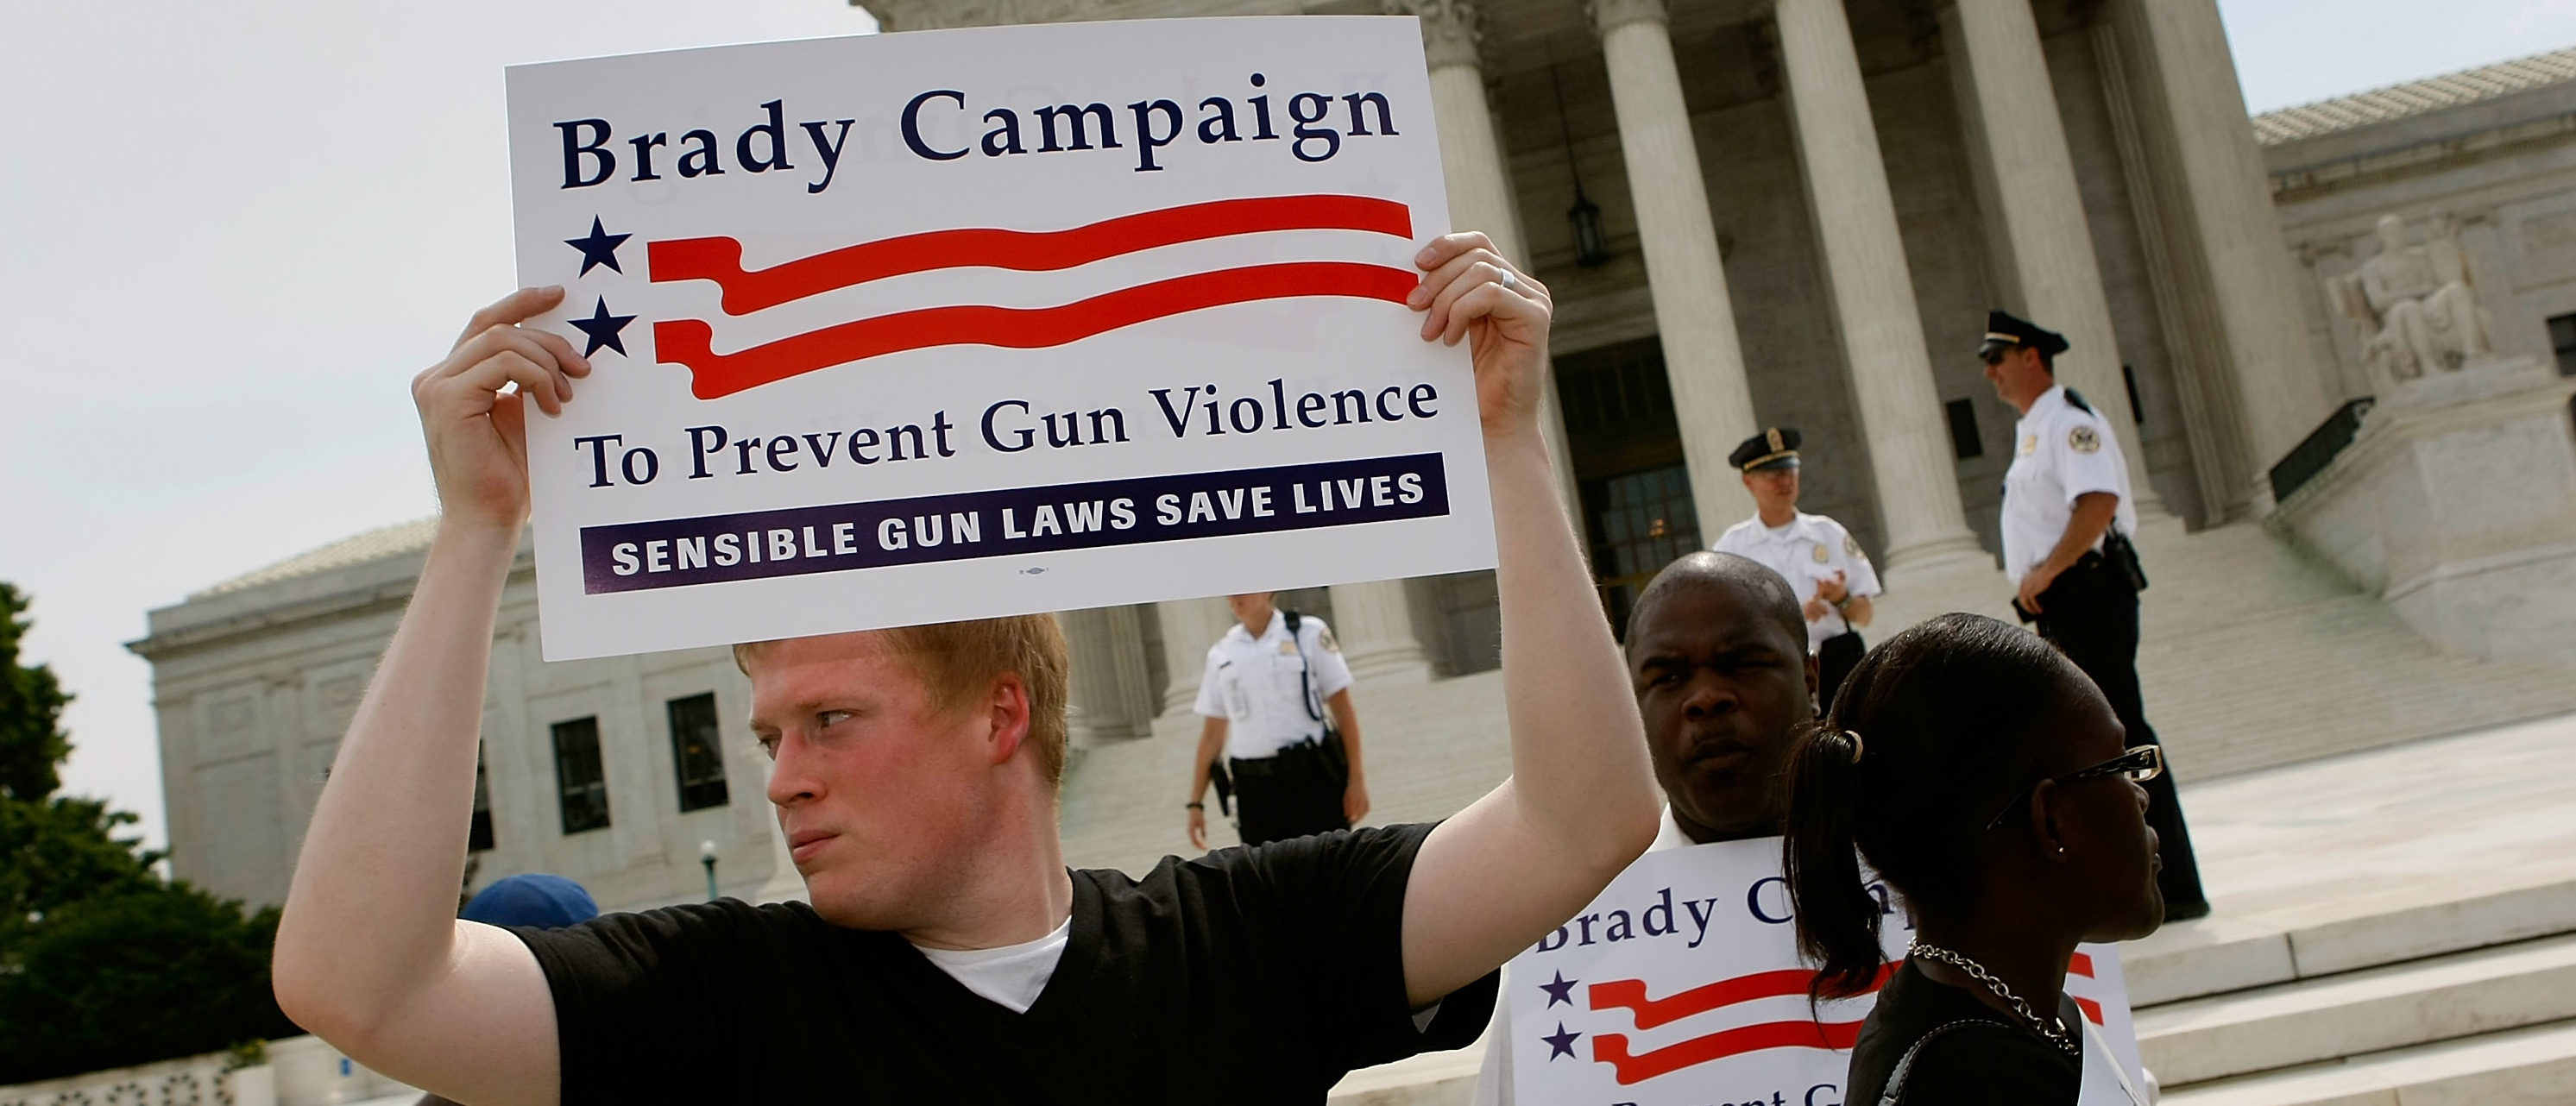 An activist with the Brady Campaign for gun control holds a sign as he stands in front stand in front of the U.S. Supreme Court' after the decision on the District of Columbia's gun ban was announced, June 26, 2008 in Washington DC. (Photo by Mark Wilson/Getty Images)